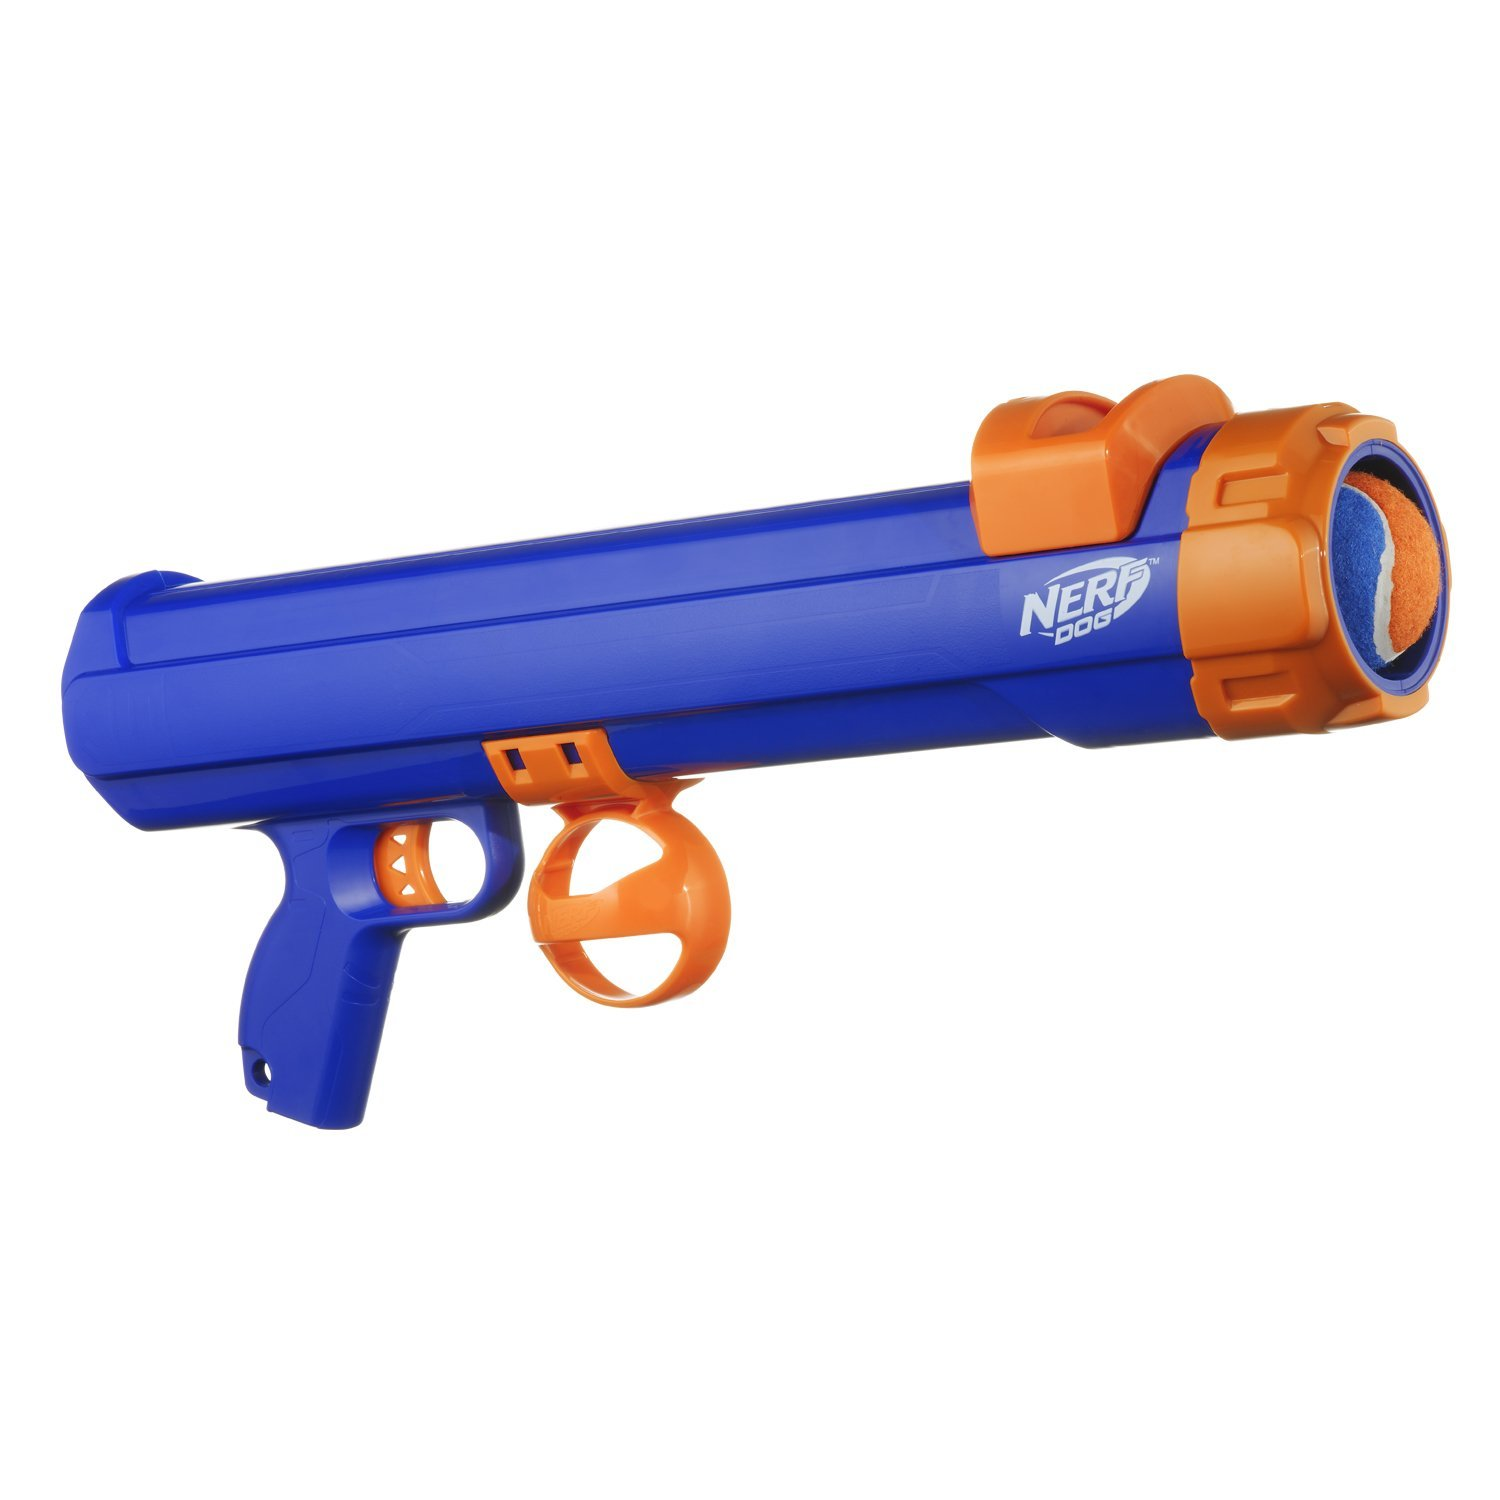 Nerf Dog Tennis Ball Blaster: Your Dog's New Best Friend